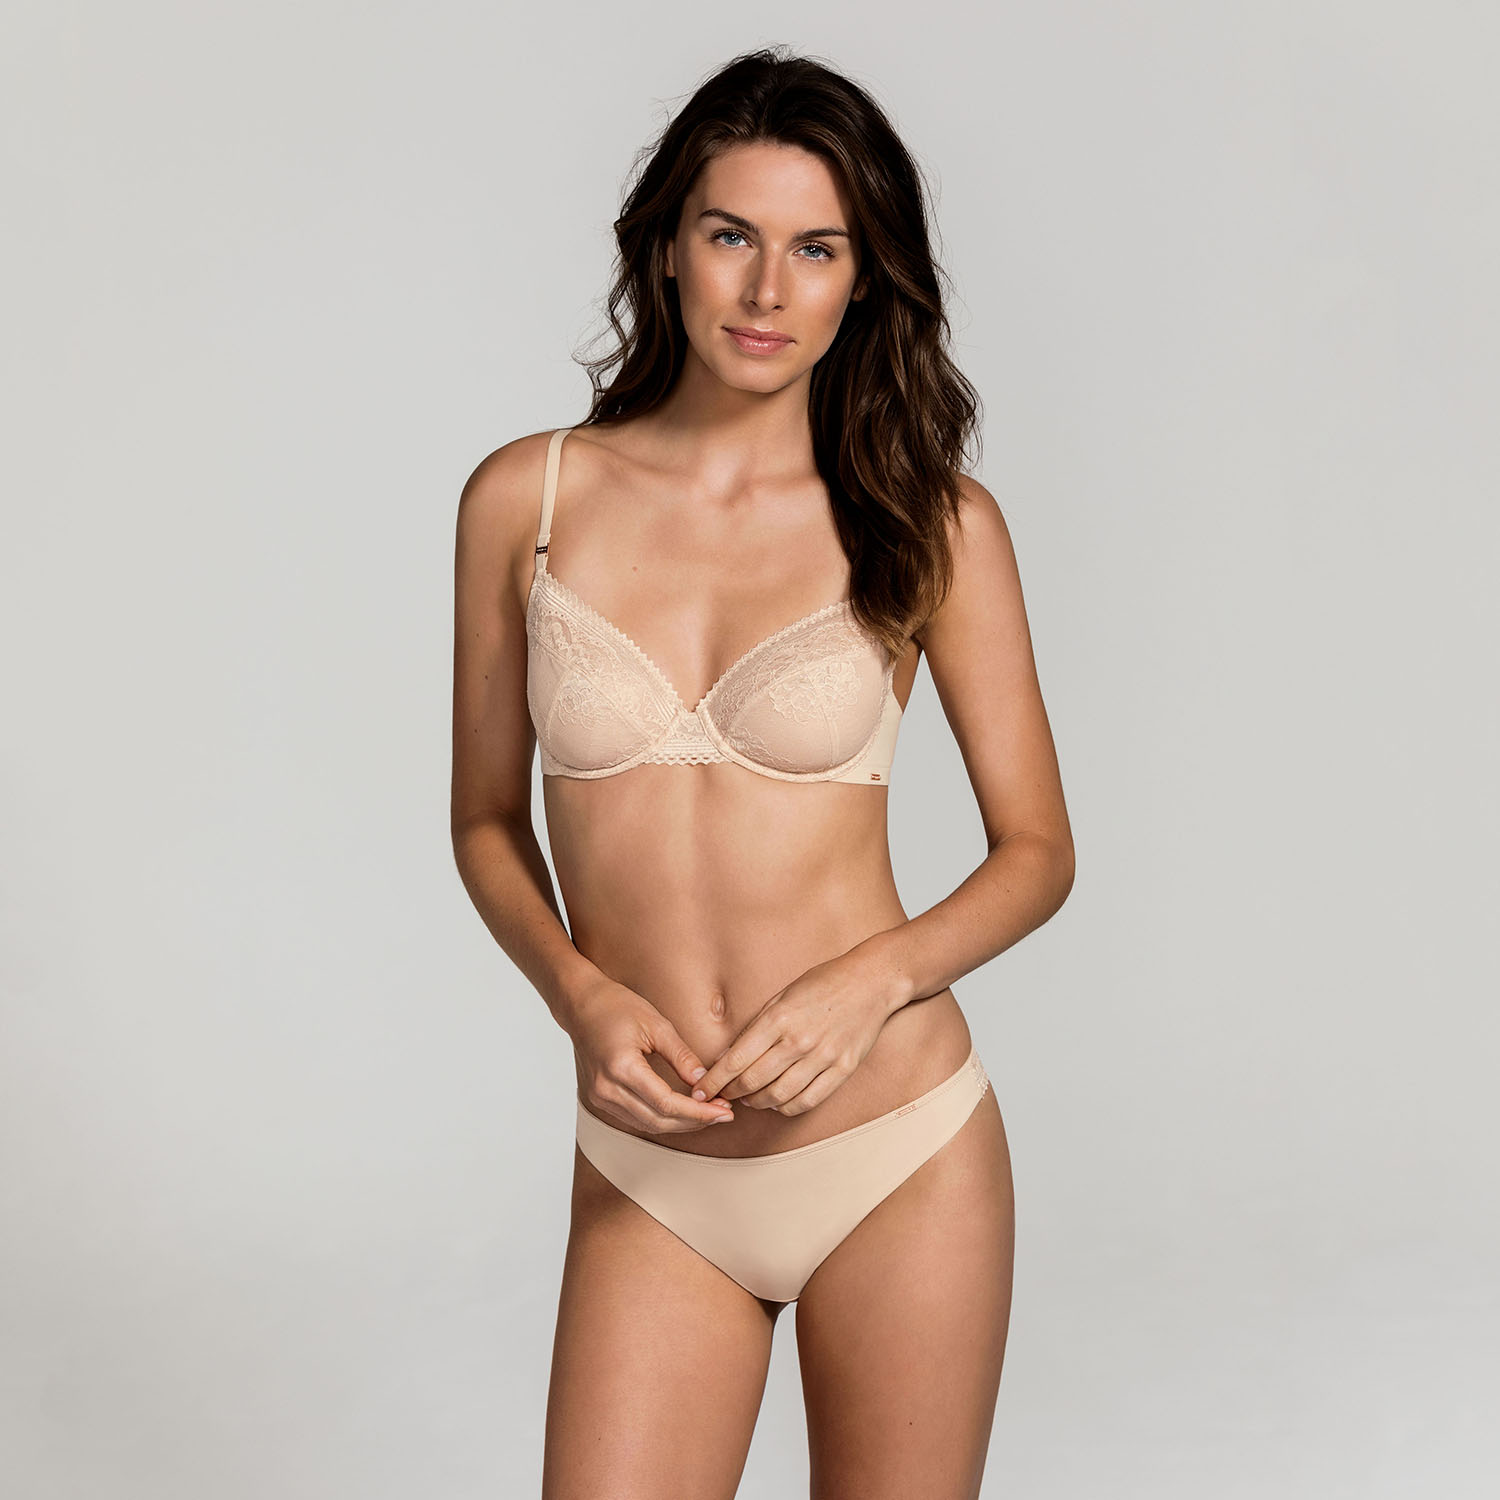 DORINA_Onbody_Isabelle_D17680A-B60_Non_Padded_Bra_D00565M-B60_String_Nude_Kat_F